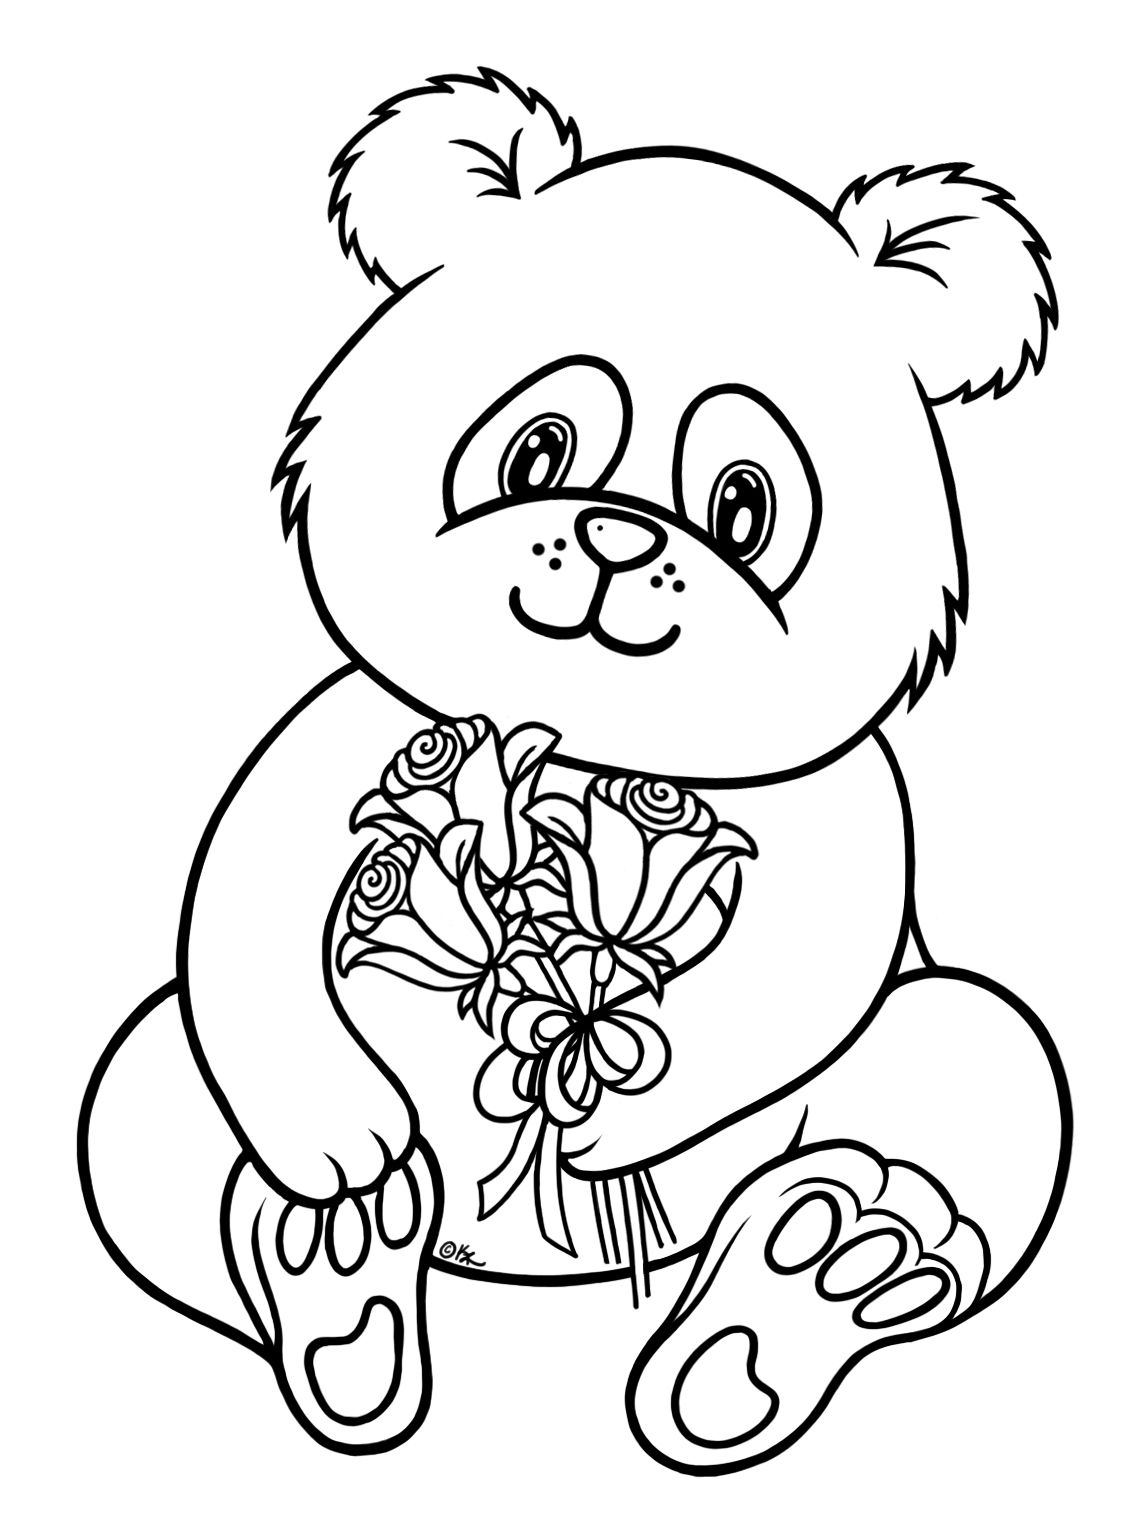 Panda Bear Bearywishes Coloring Pages Cross Page Pattern